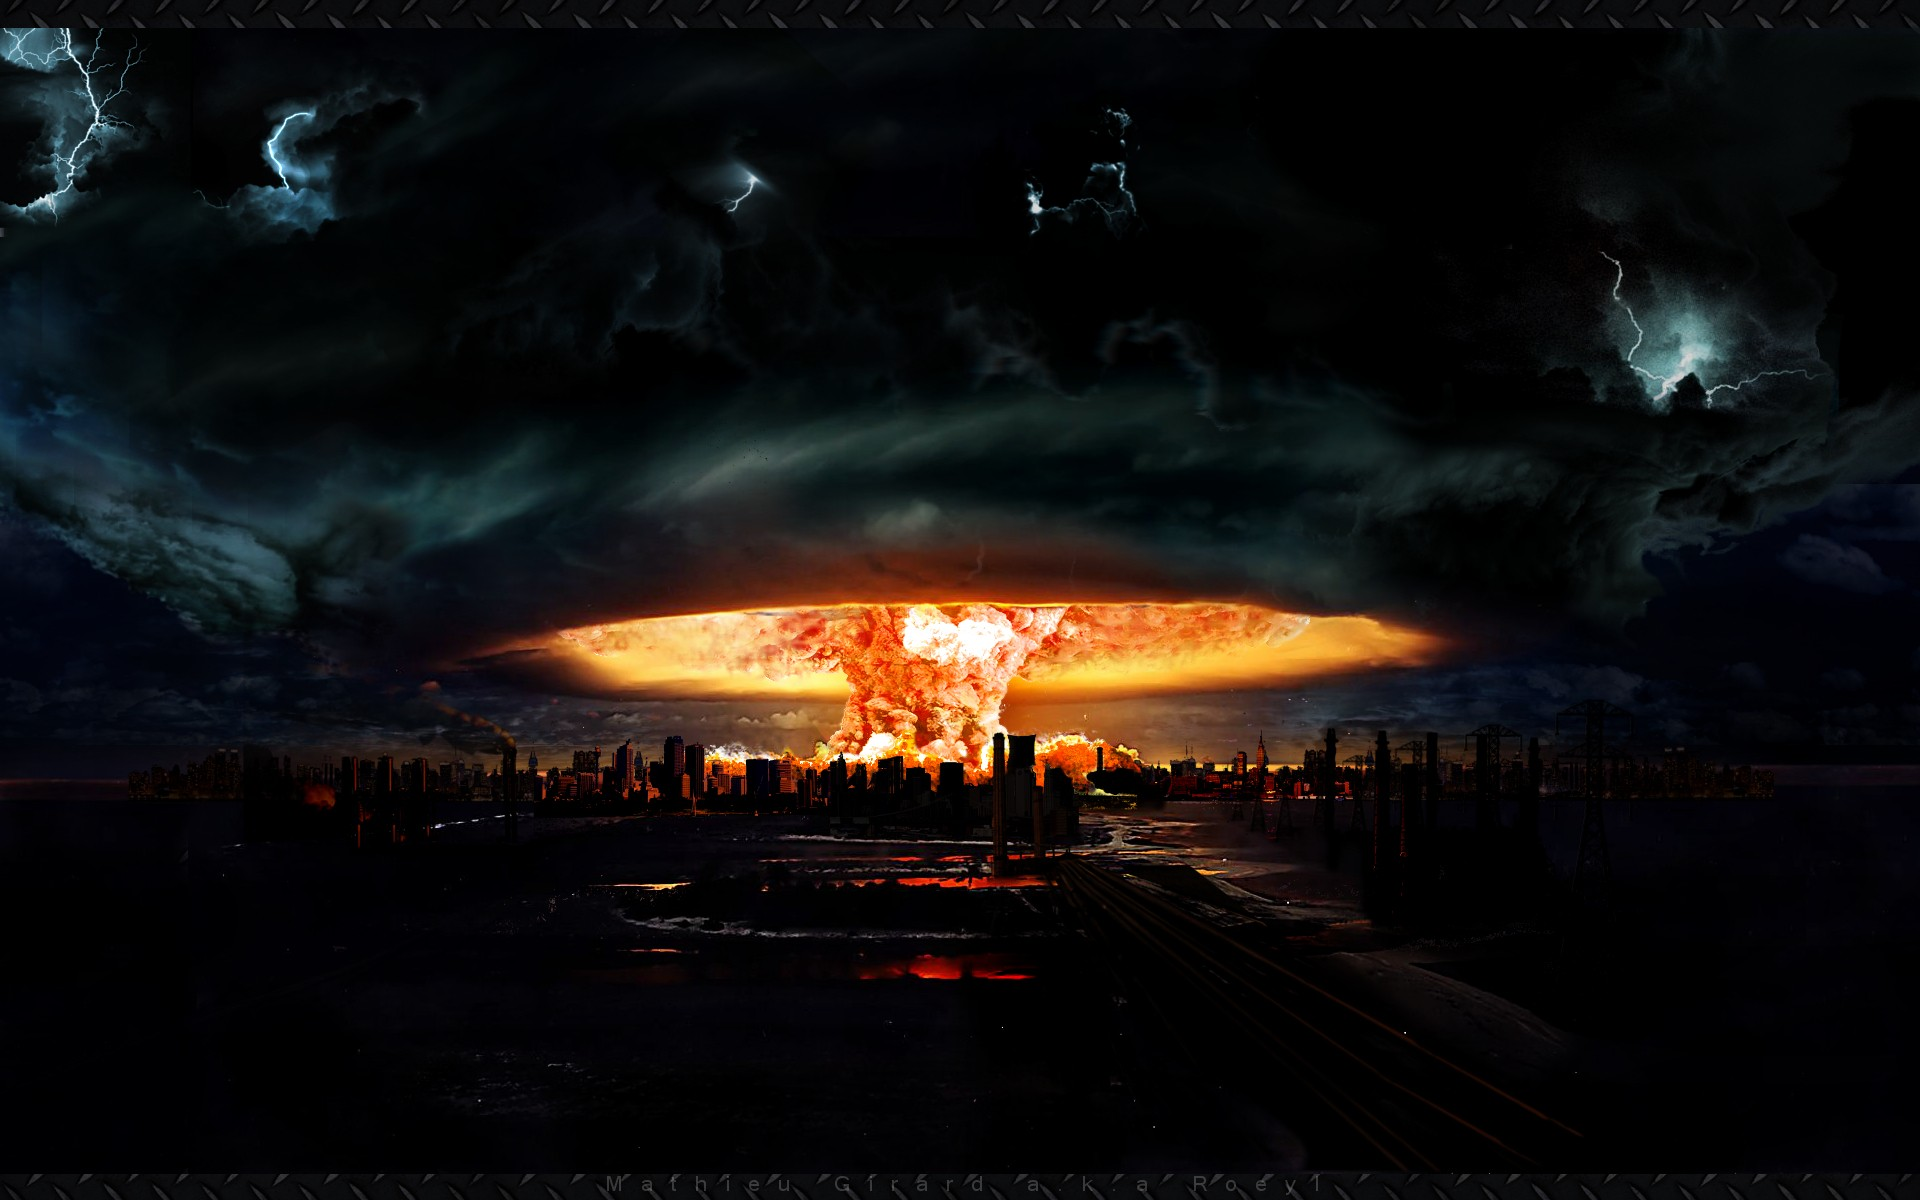 apocalypse the end nuclear explosions